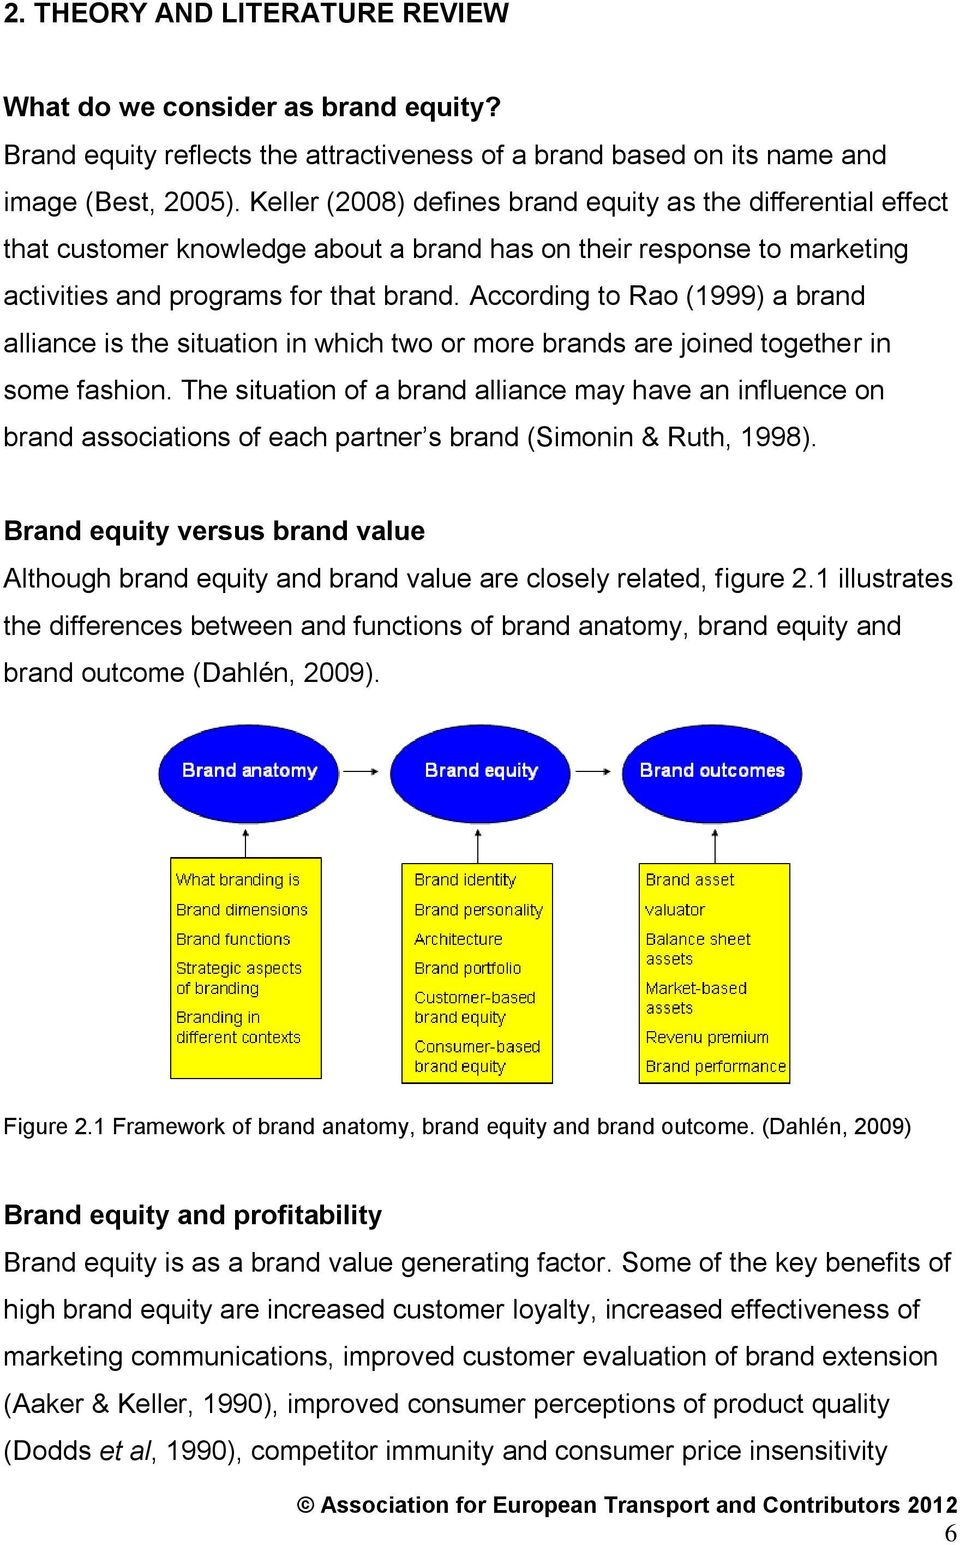 difference between branding and brand equity